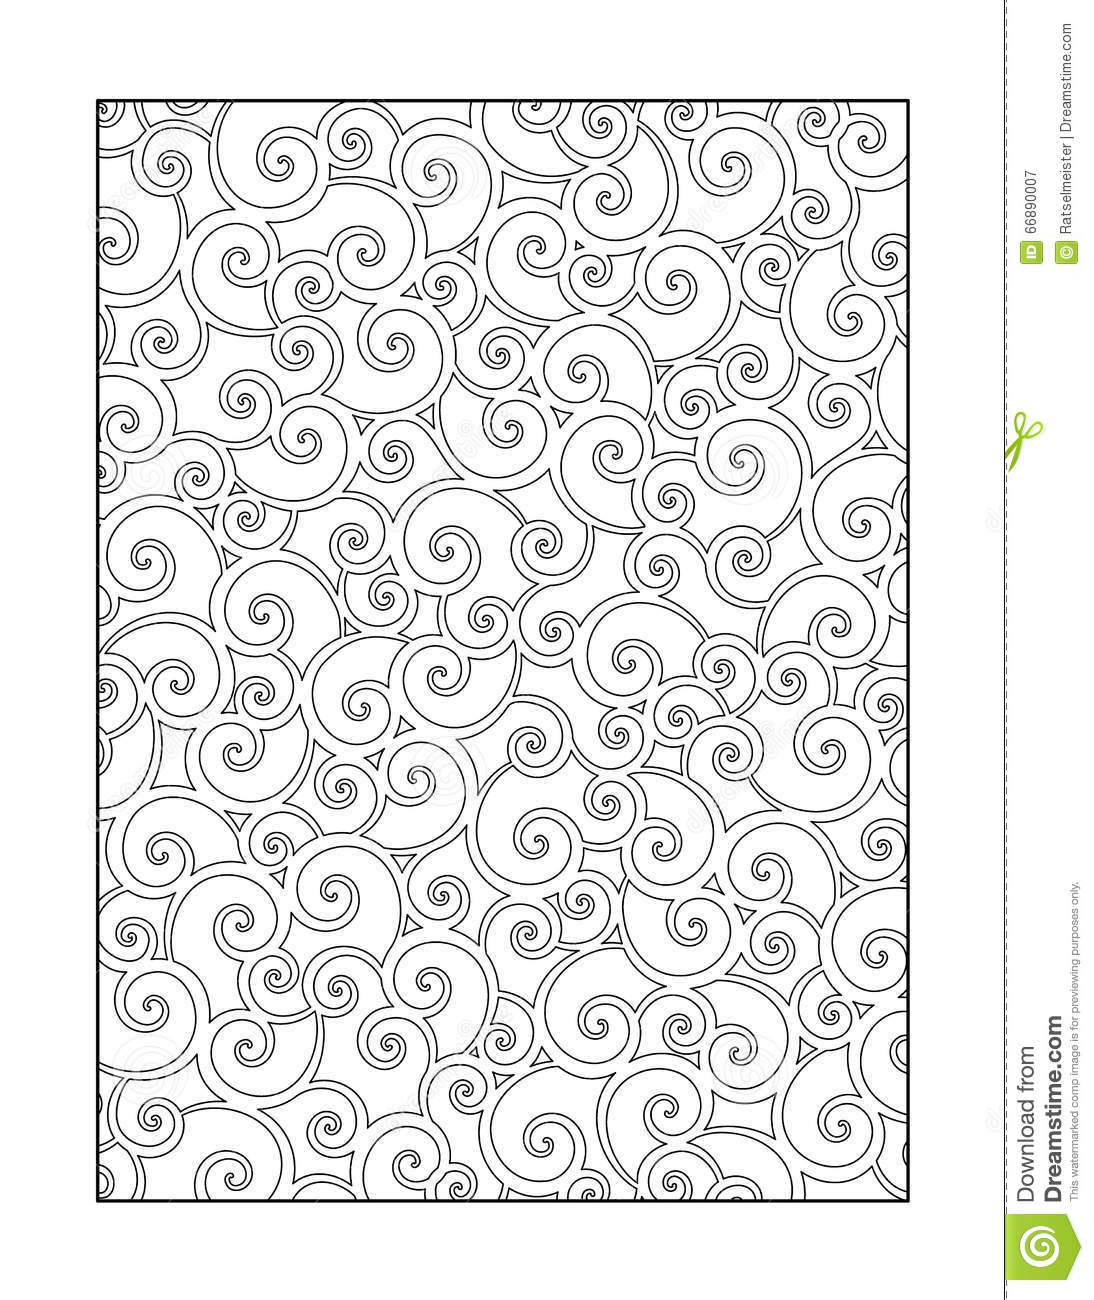 black and white color pages free printable butterfly coloring page ausdruckbare and white black color pages